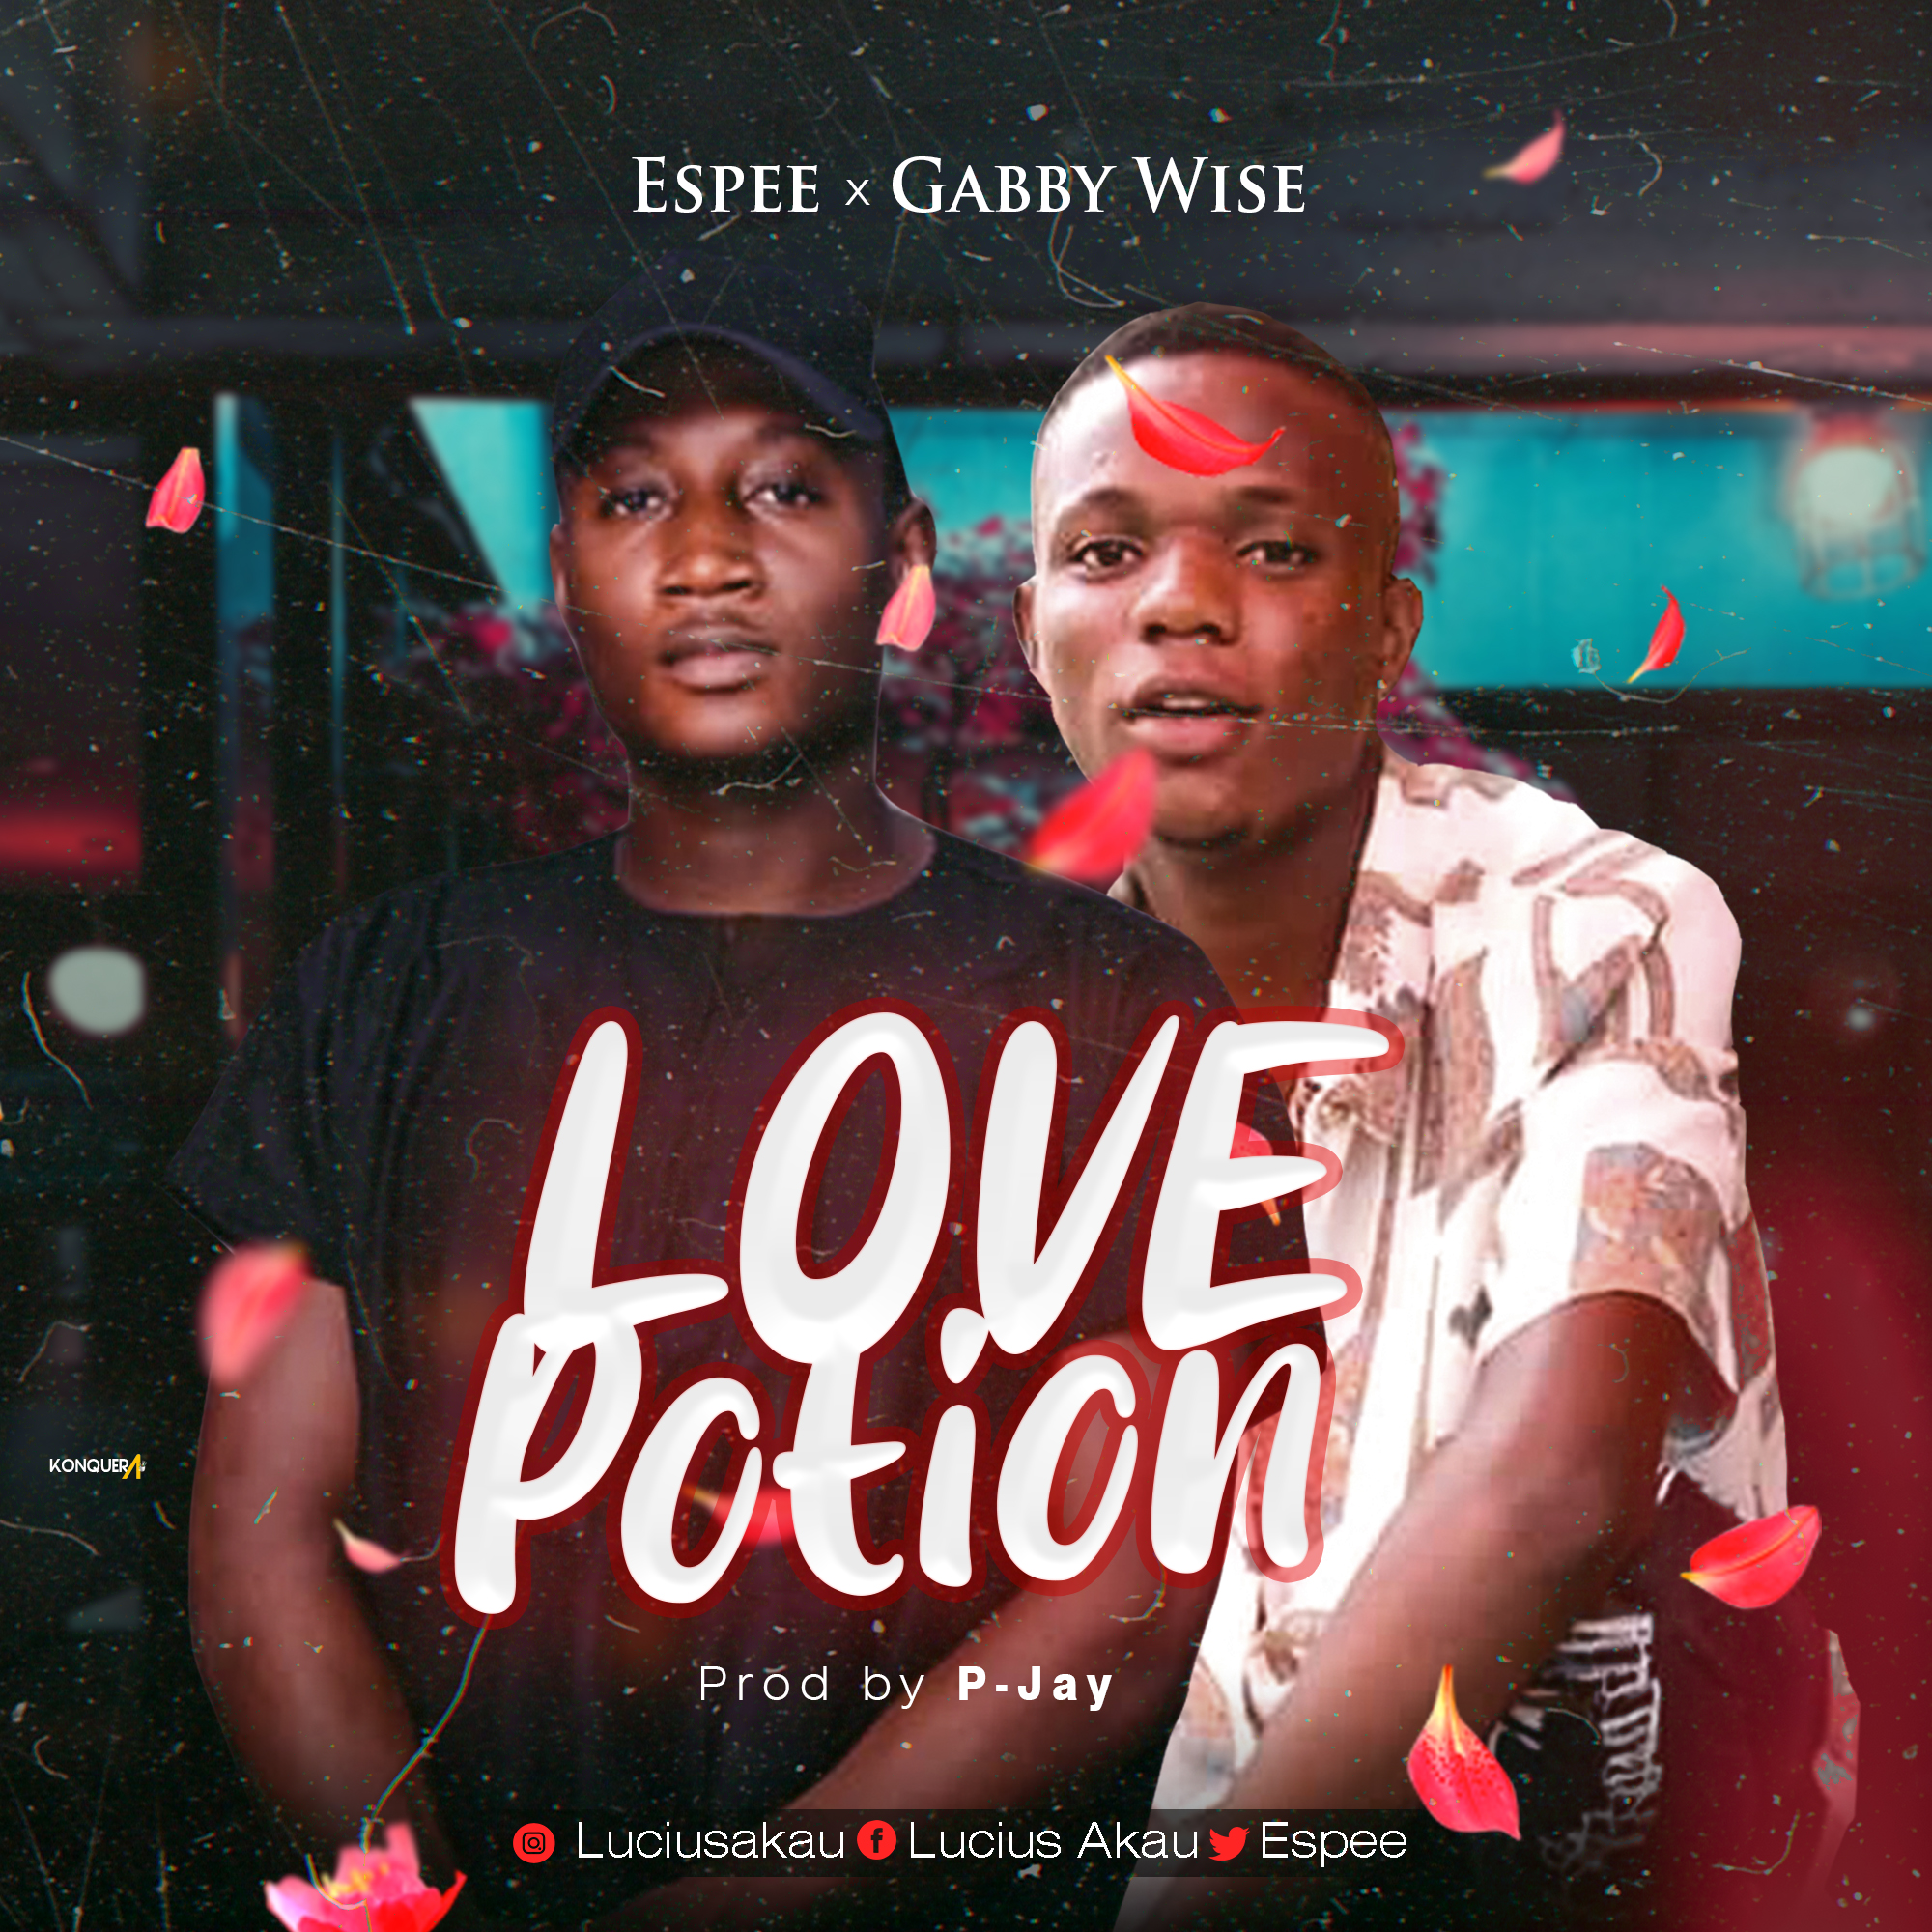 MP3: Espee ft Gabby Wise - Love Portion